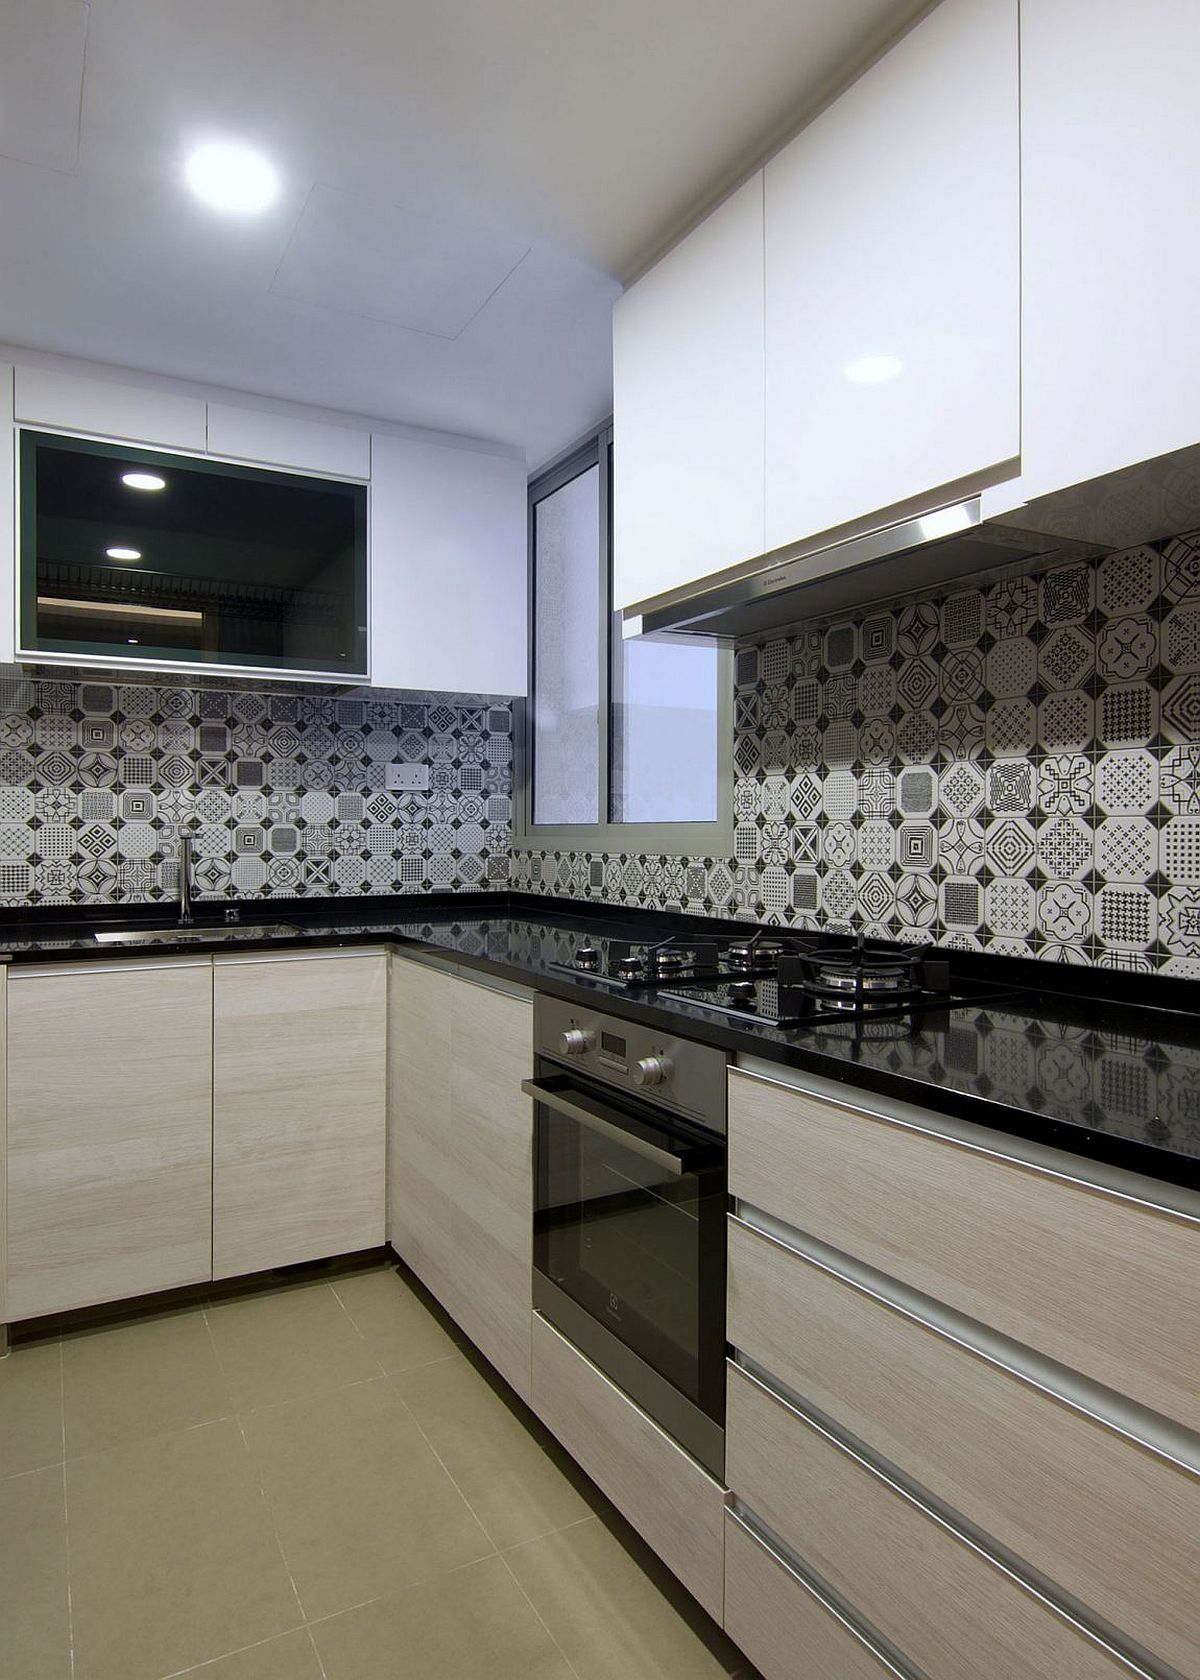 stylish kitchen backsplash with patterned tiles in black